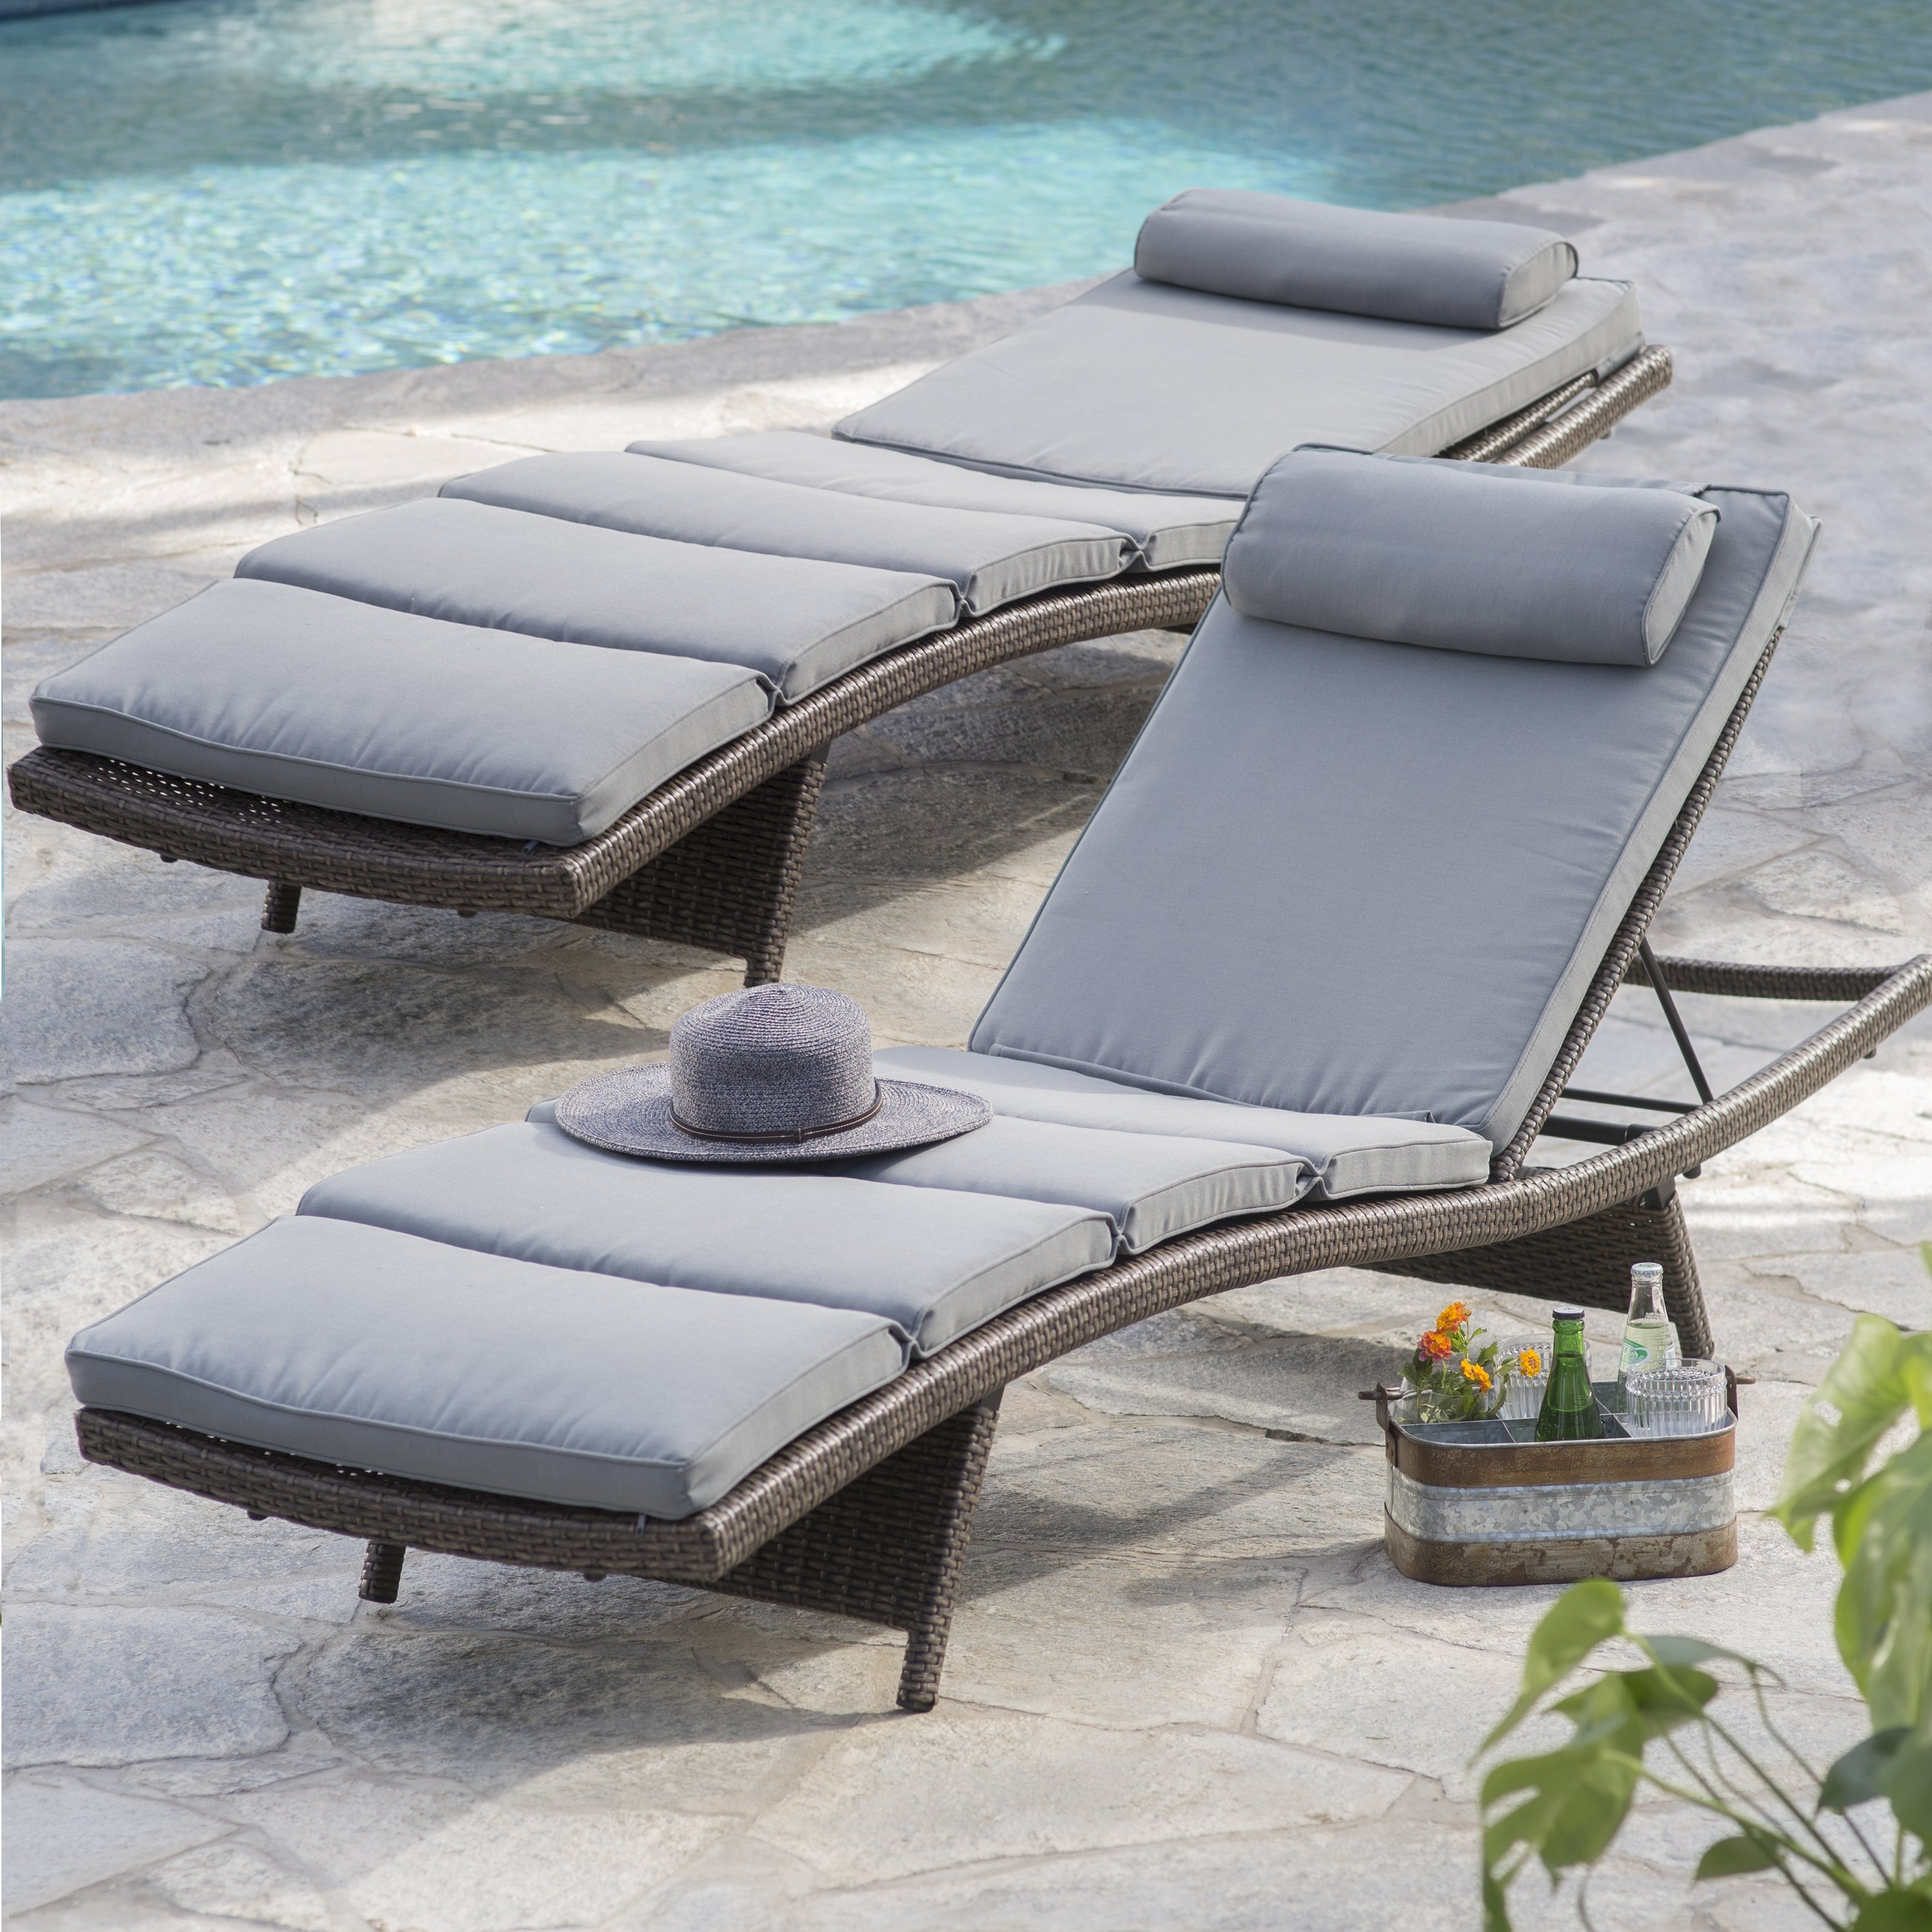 Chaise Lounge Chairs For Outdoor In Well Known Keter Outdoor Chaise Lounge – Set Of  (View 2 of 15)